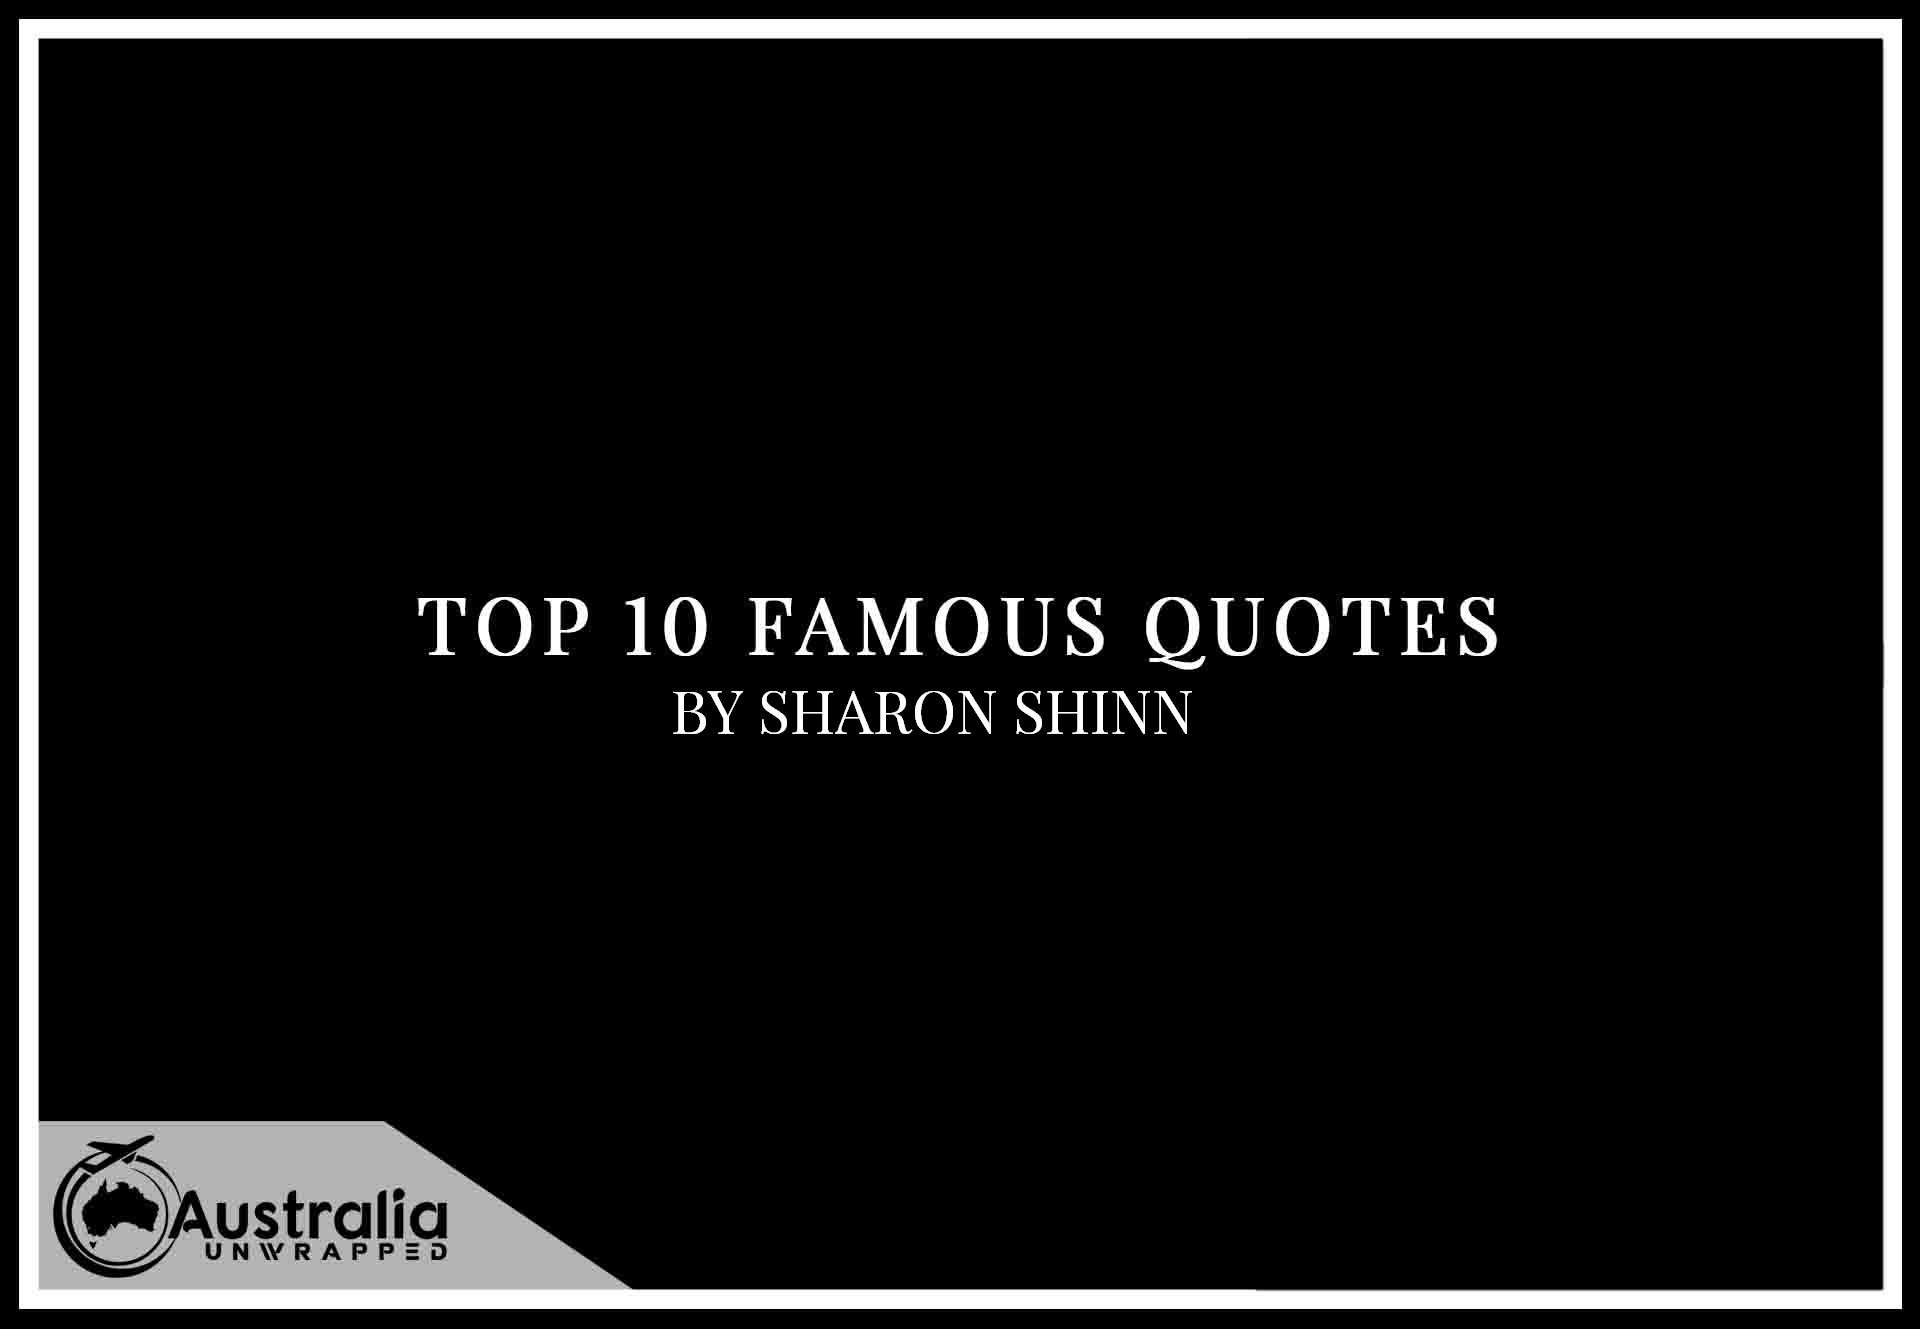 Top 10 Famous Quotes by Author Sharon Shinn